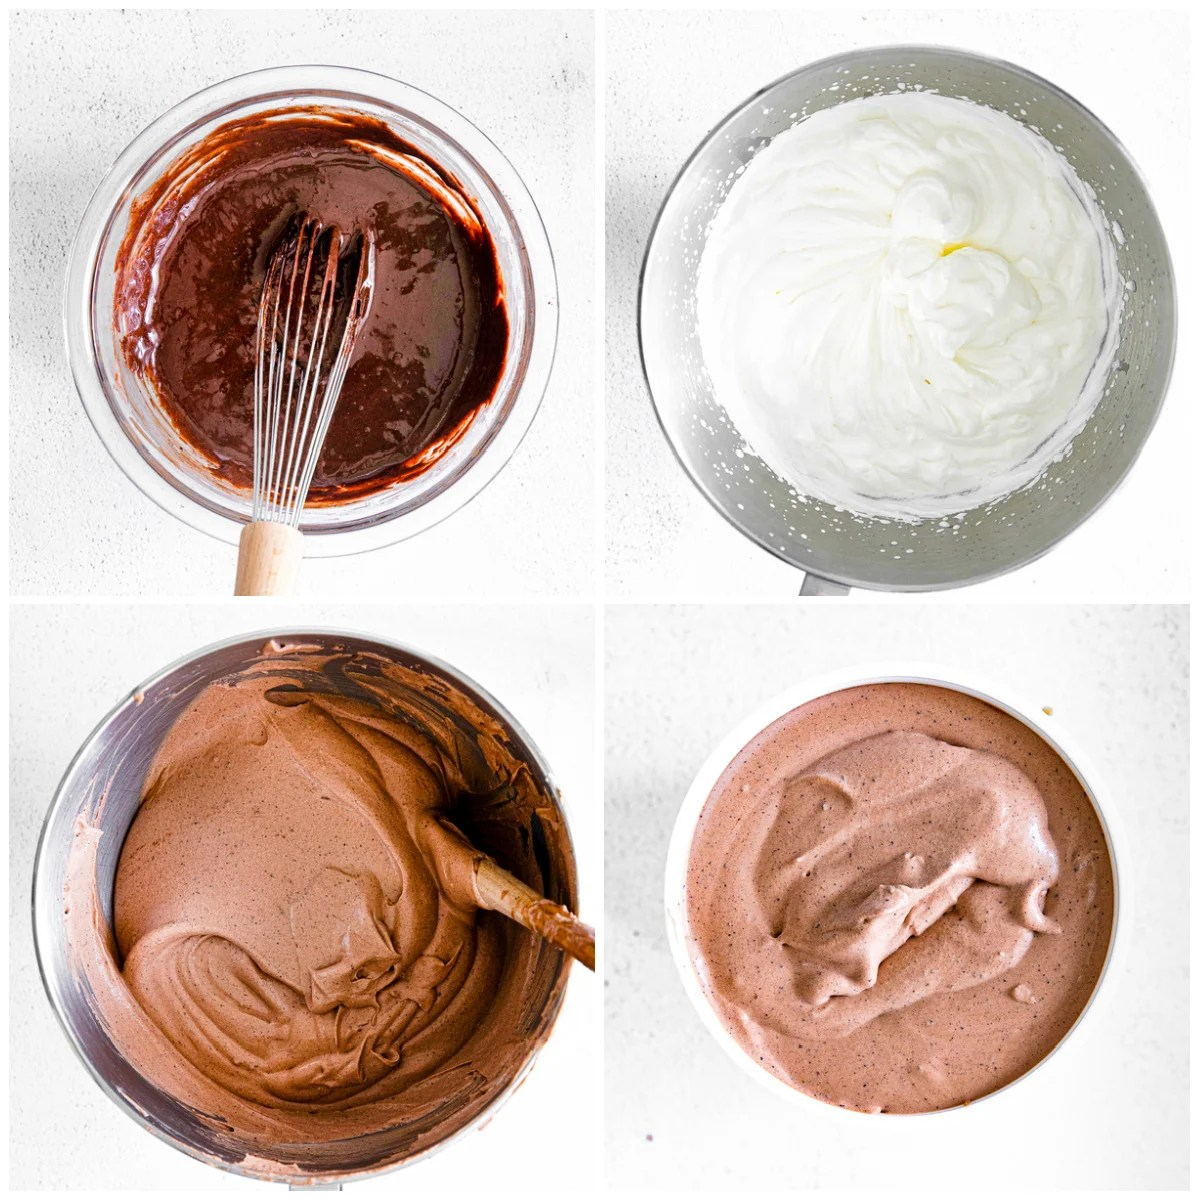 Step by step photos on how to make a Chocolate Ice Cream Recipe